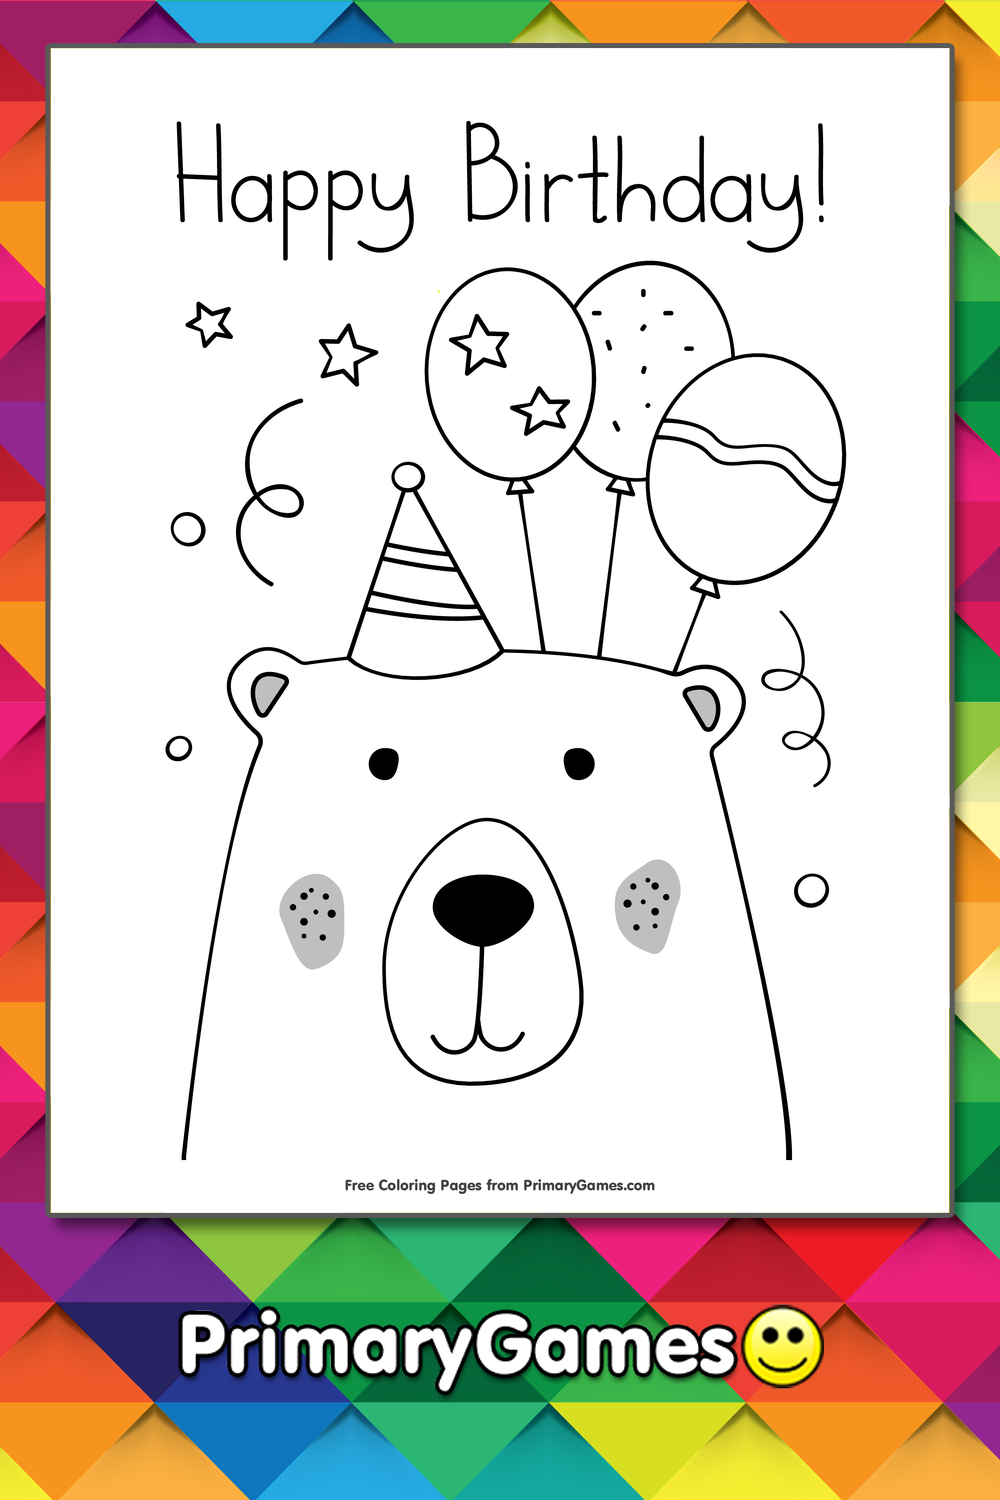 Happy Birthday Bear With Balloons Coloring Page • FREE Printable ...